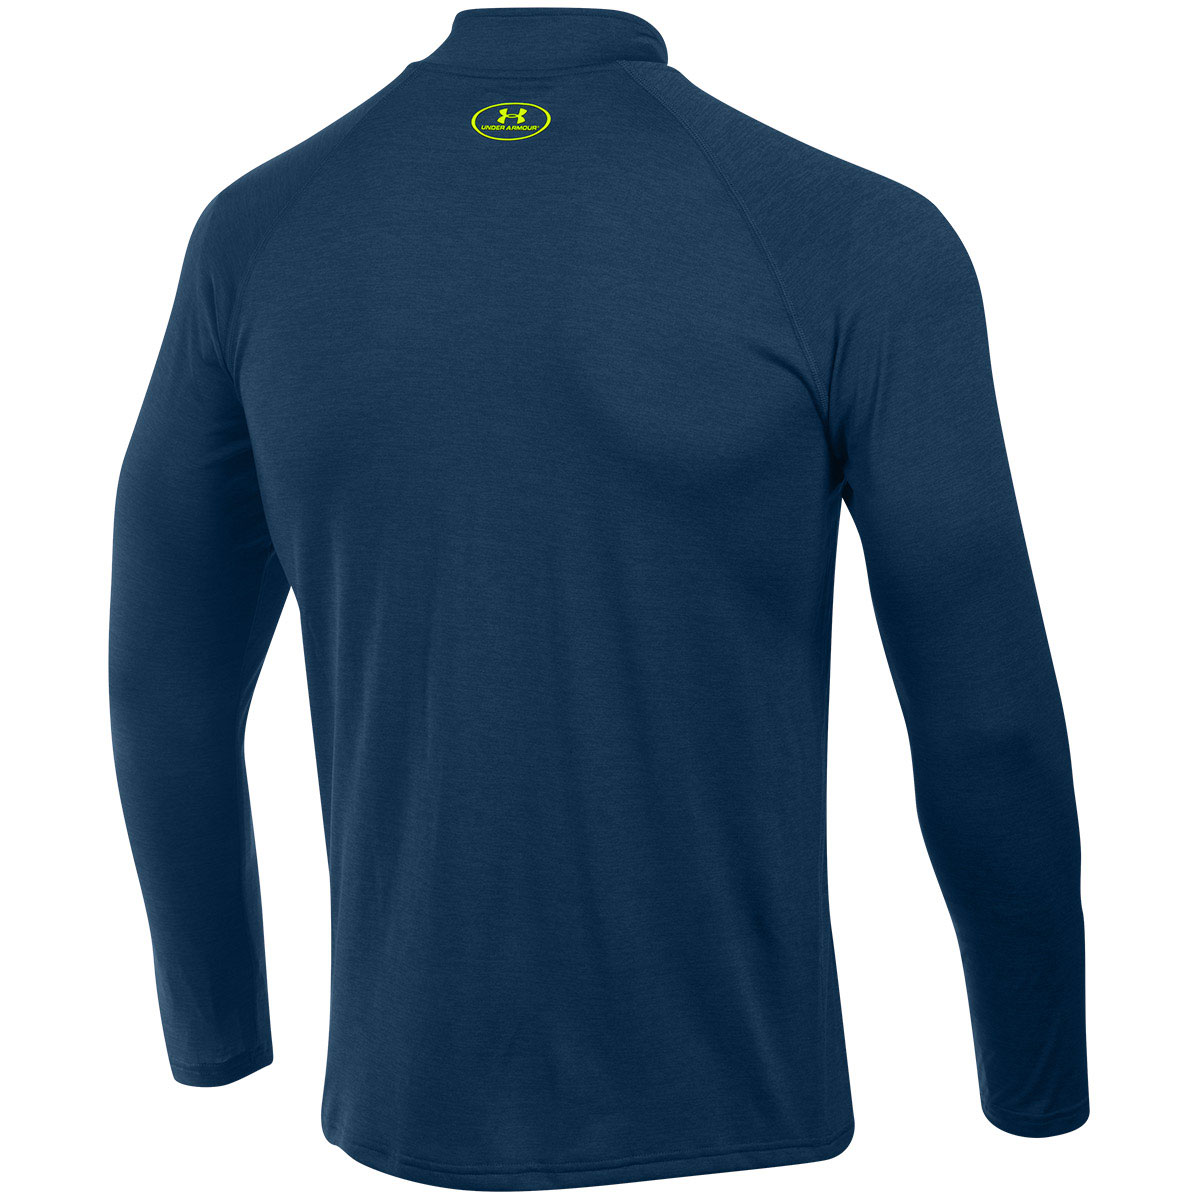 Under-Armour-Mens-UA-Tech-1-4-Zip-Long-Sleeve-Top-Workout-Layer-27-OFF-RRP thumbnail 35